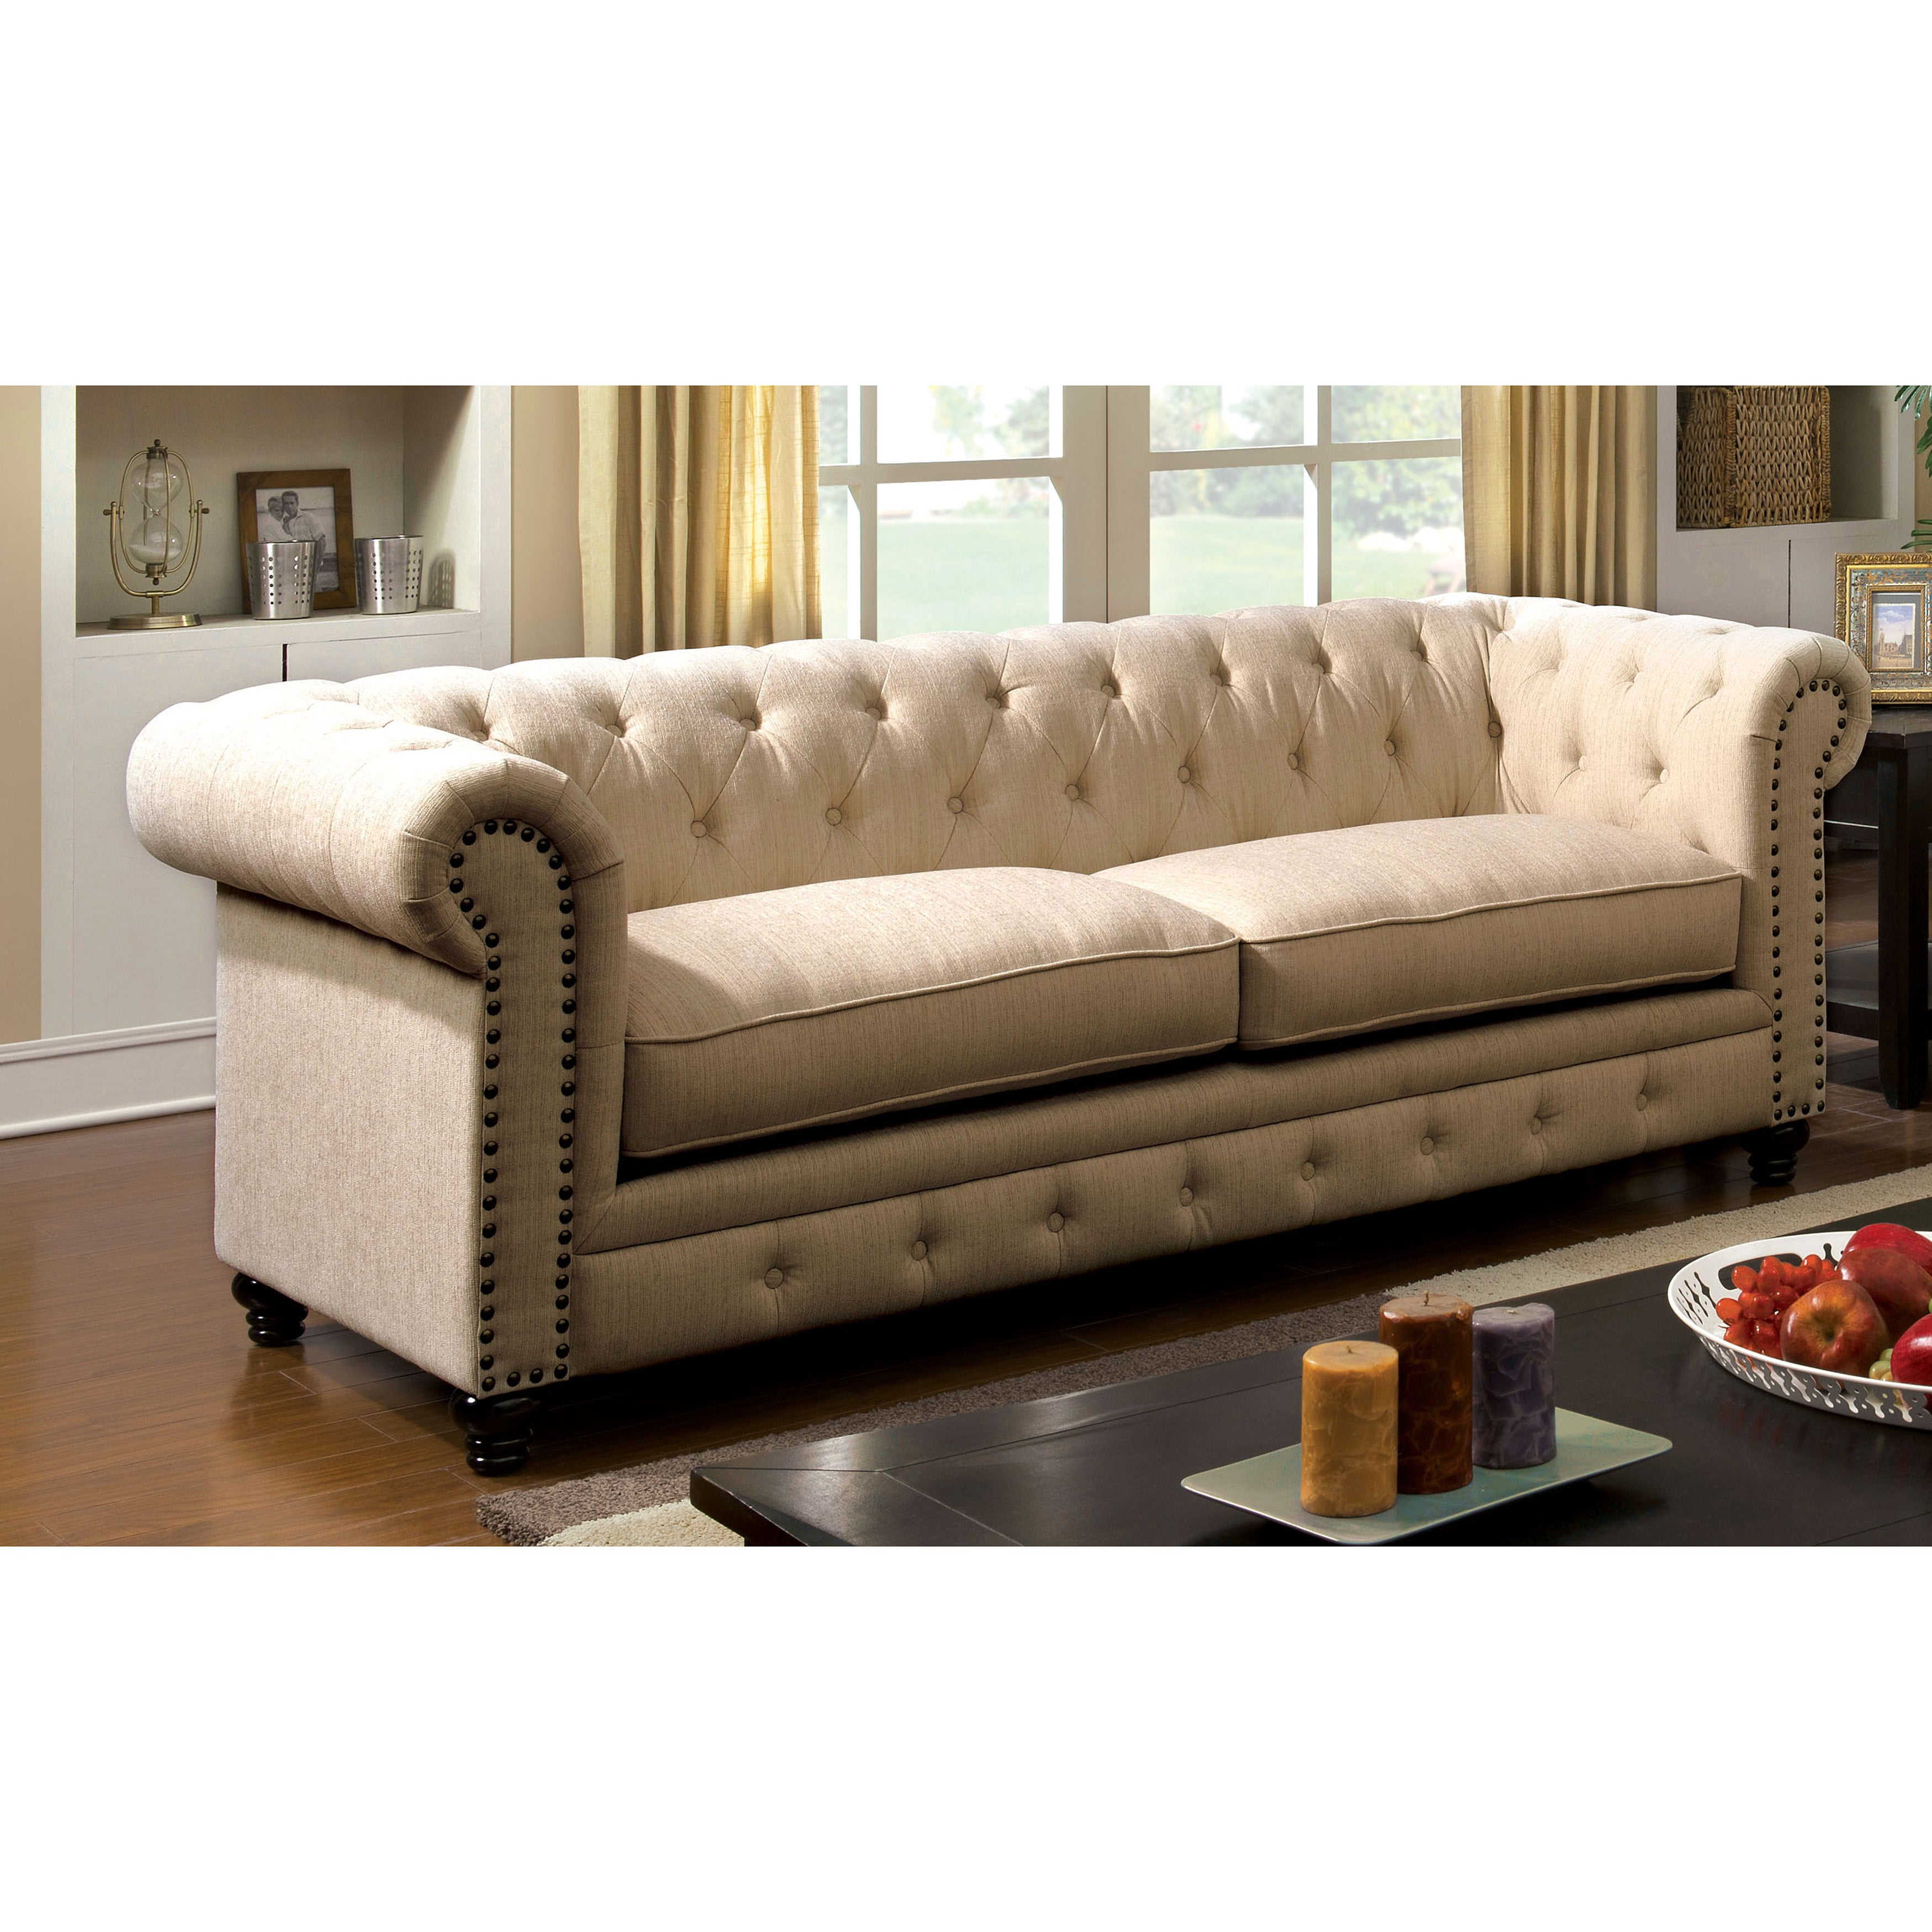 Furniture Of America Staffers Traditional Deep Tufted Tuxedo Style Sofa Free Shipping Today 19163418